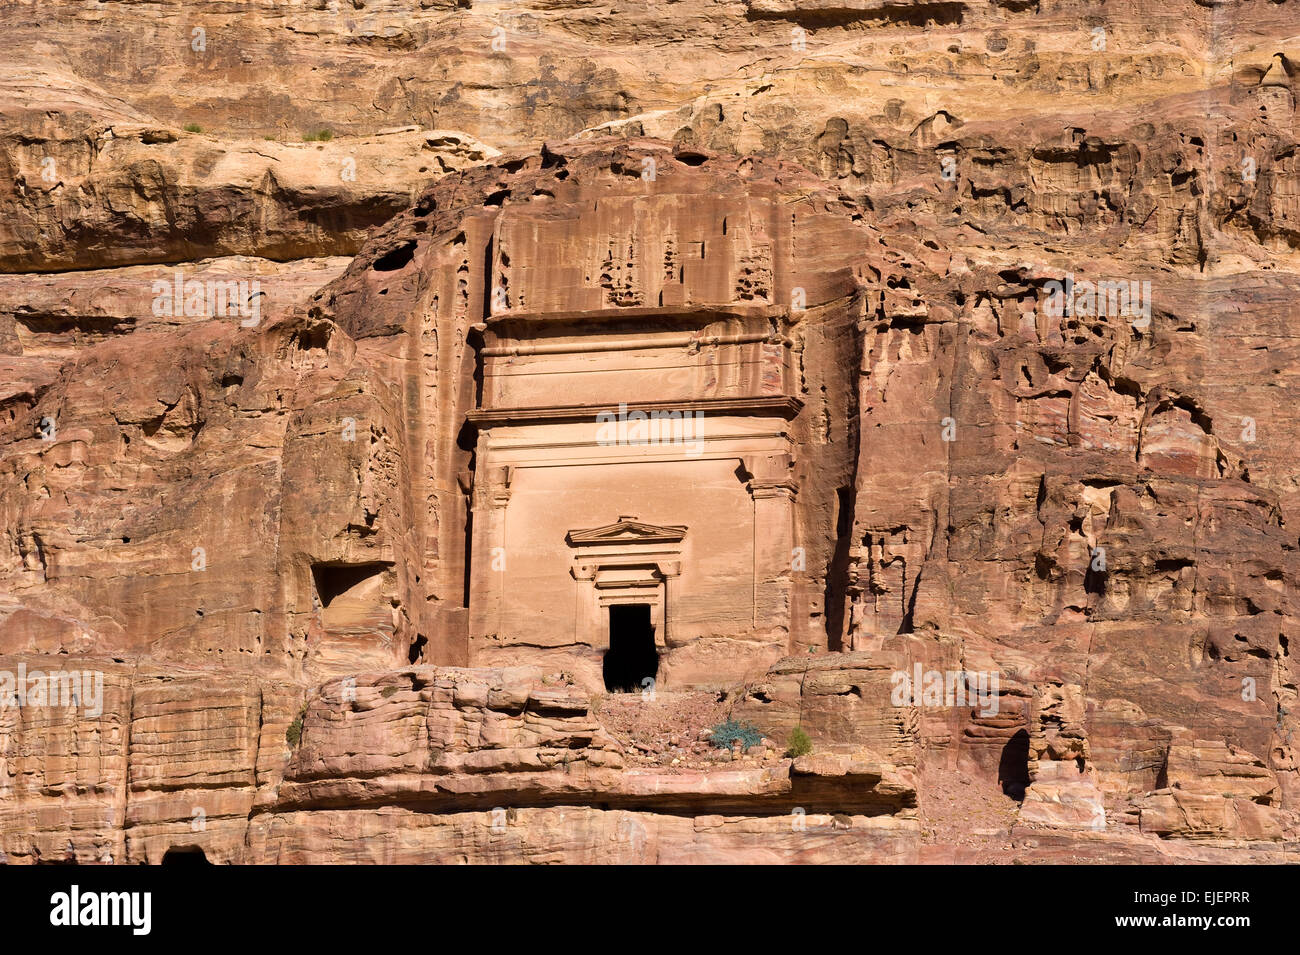 One of the tombs in Petra in Jordan - Stock Image